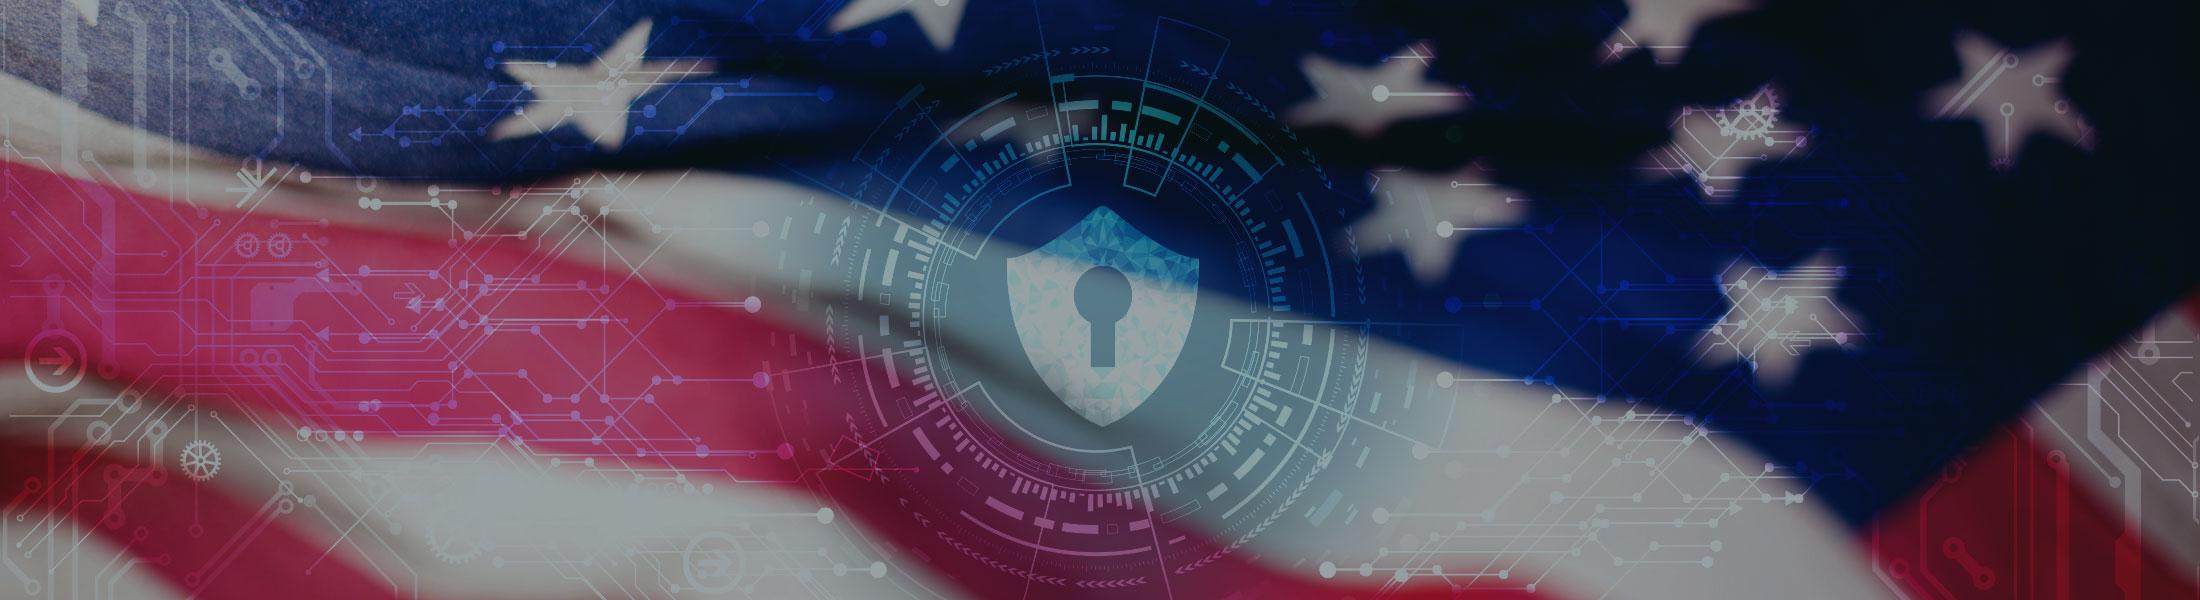 DHS Awards ECS $276M to Deliver Advanced CDM Dashboard Ecosystem